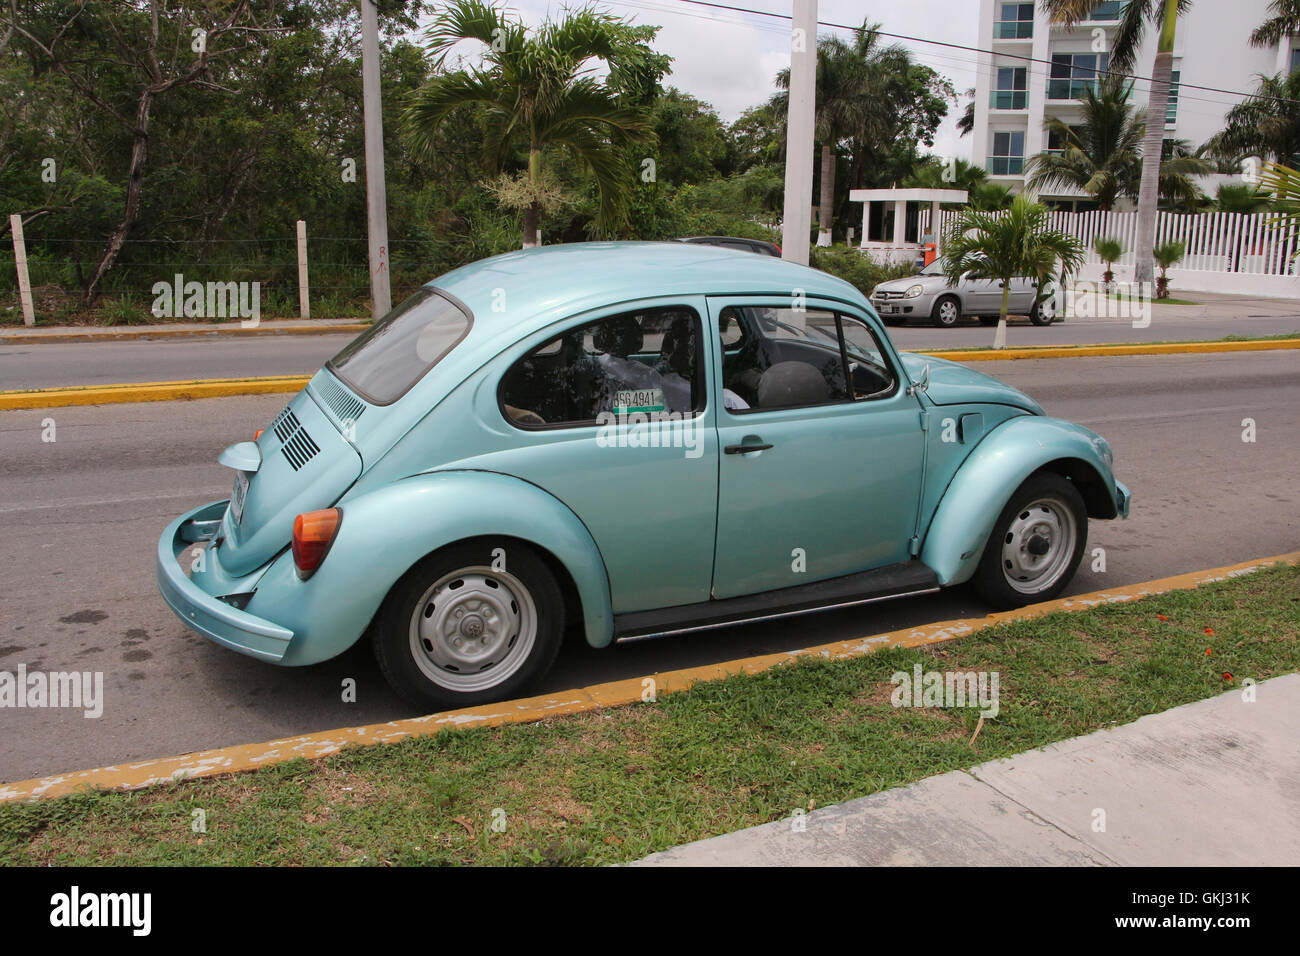 volkswagen mexico punch buggies punch buggy punch car punch stock photo royalty free image. Black Bedroom Furniture Sets. Home Design Ideas